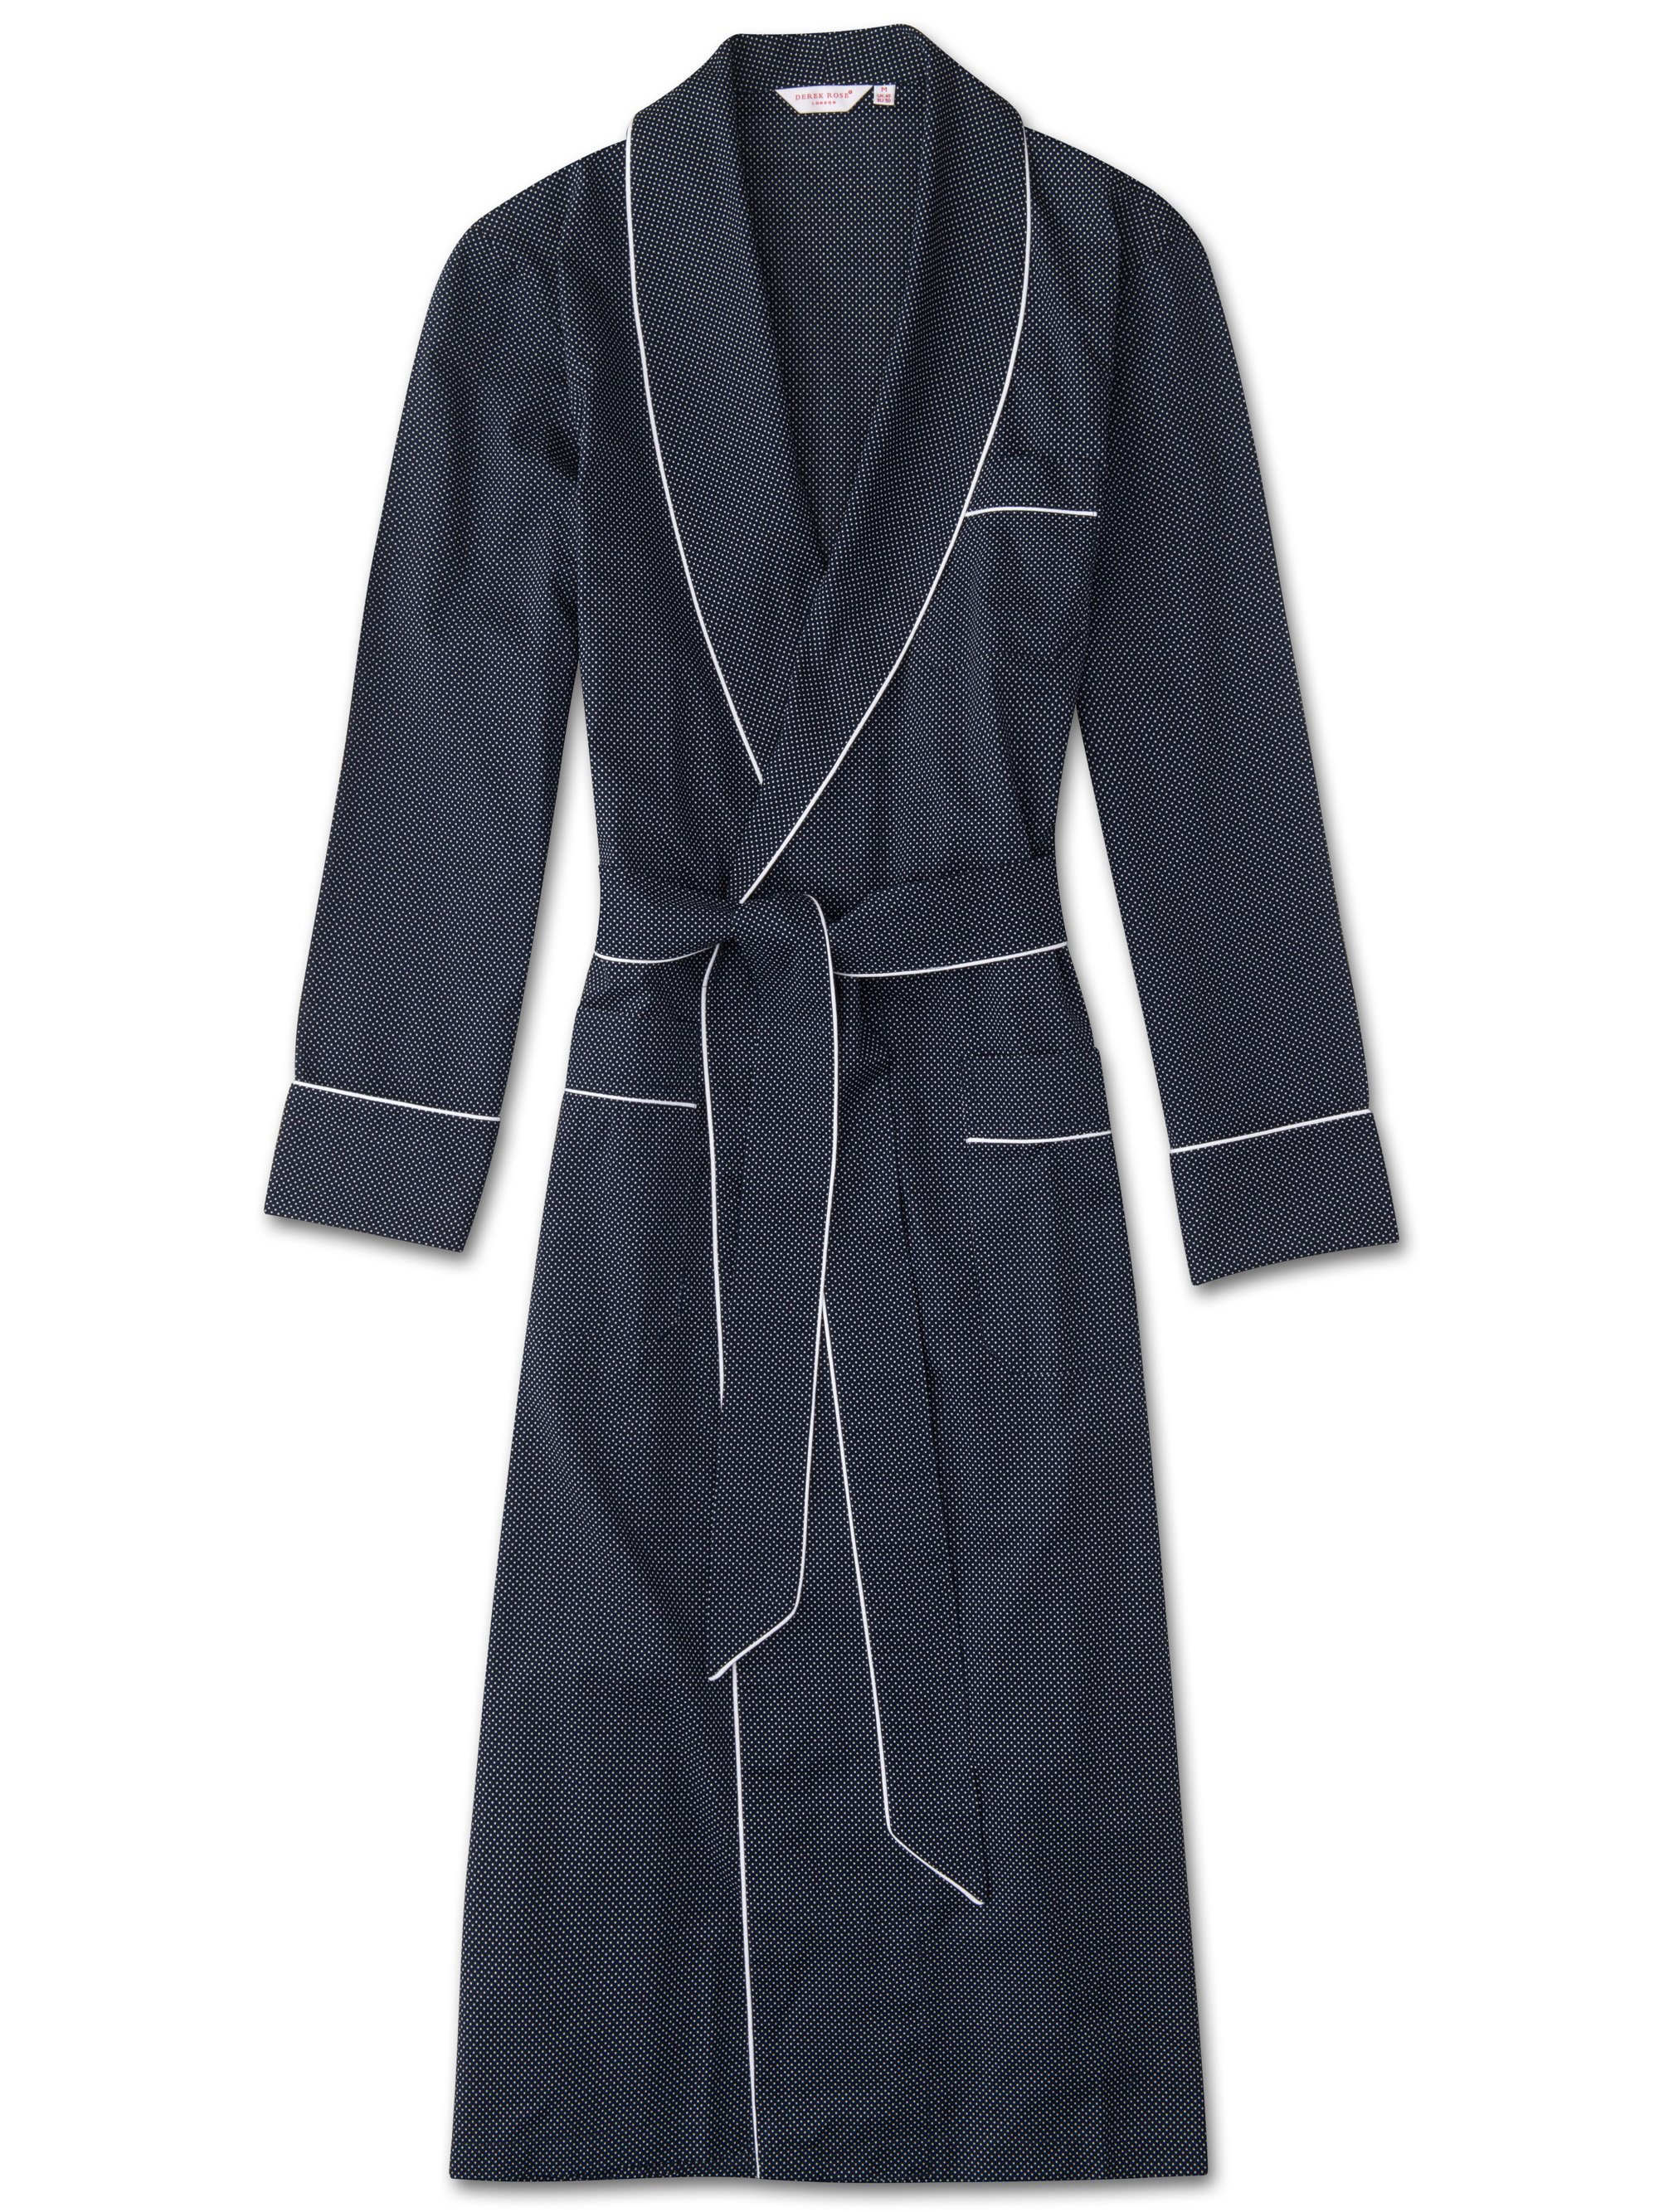 Derek Rose Men's Piped Dressing Gown — Plaza 21 Cotton Batiste Polka Dot Navy